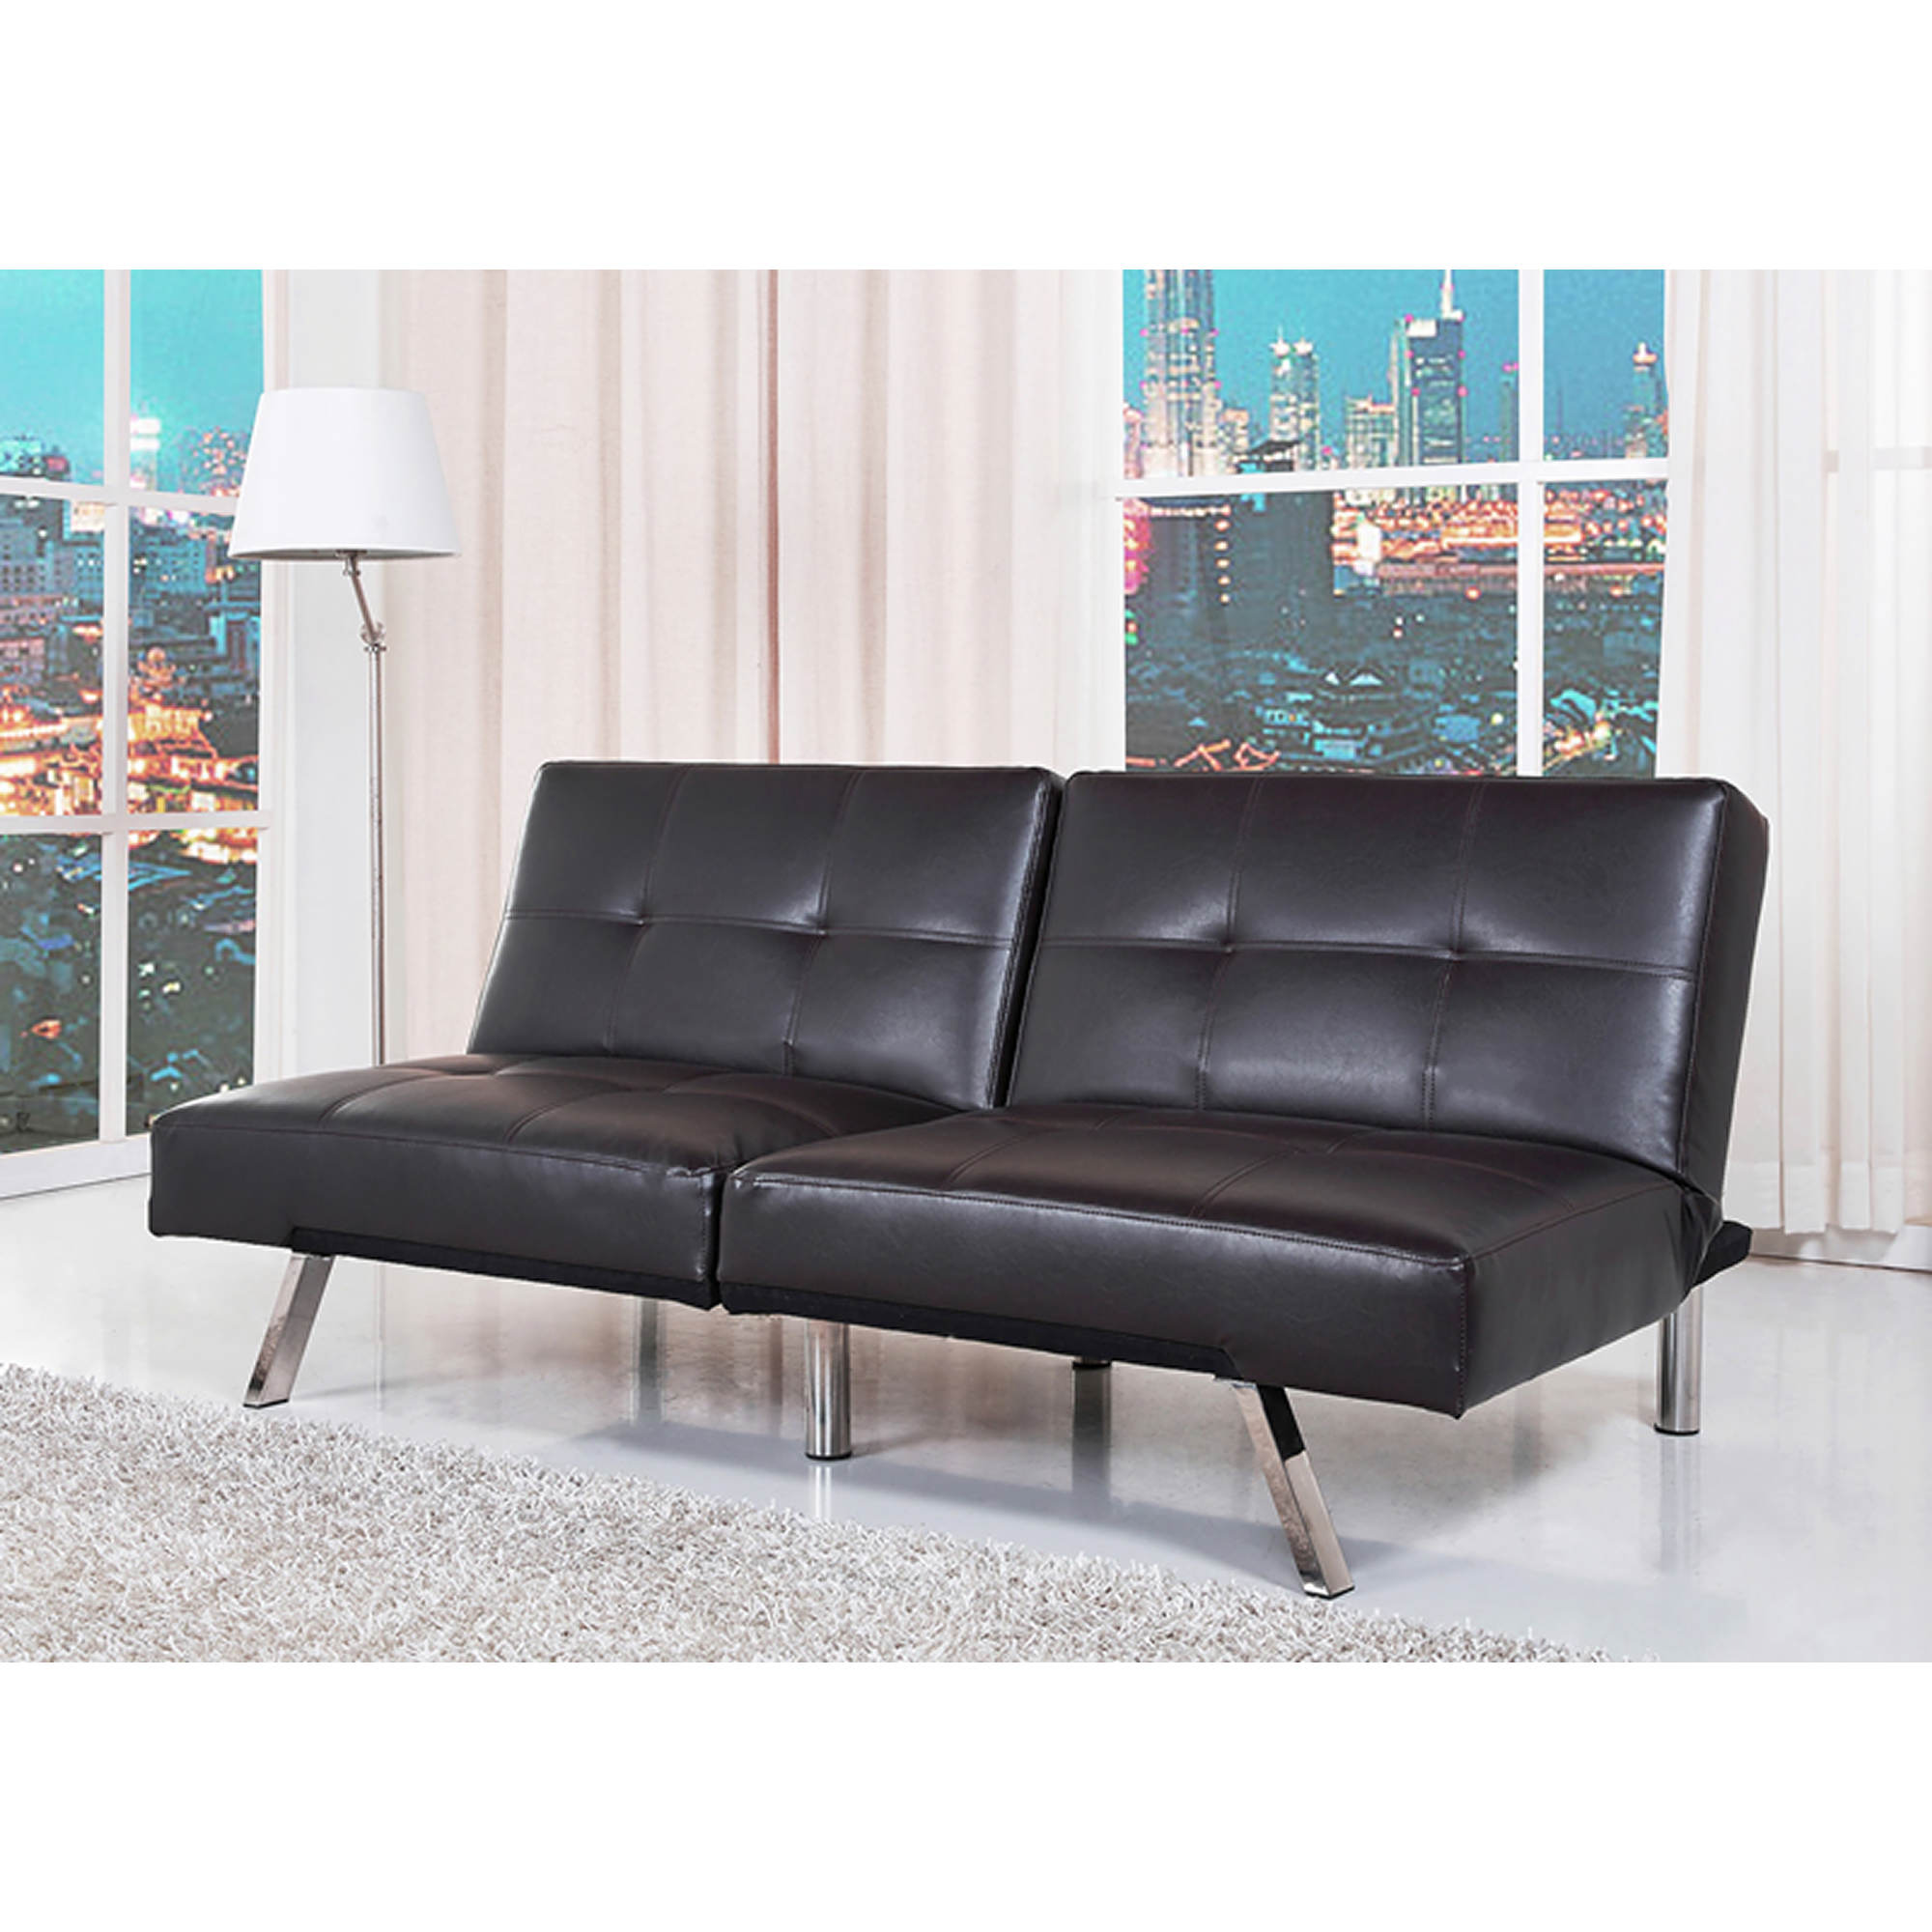 Milano Red Leather Sofa: Abbyson Living Milano Bonded Leather Convertible Sofa